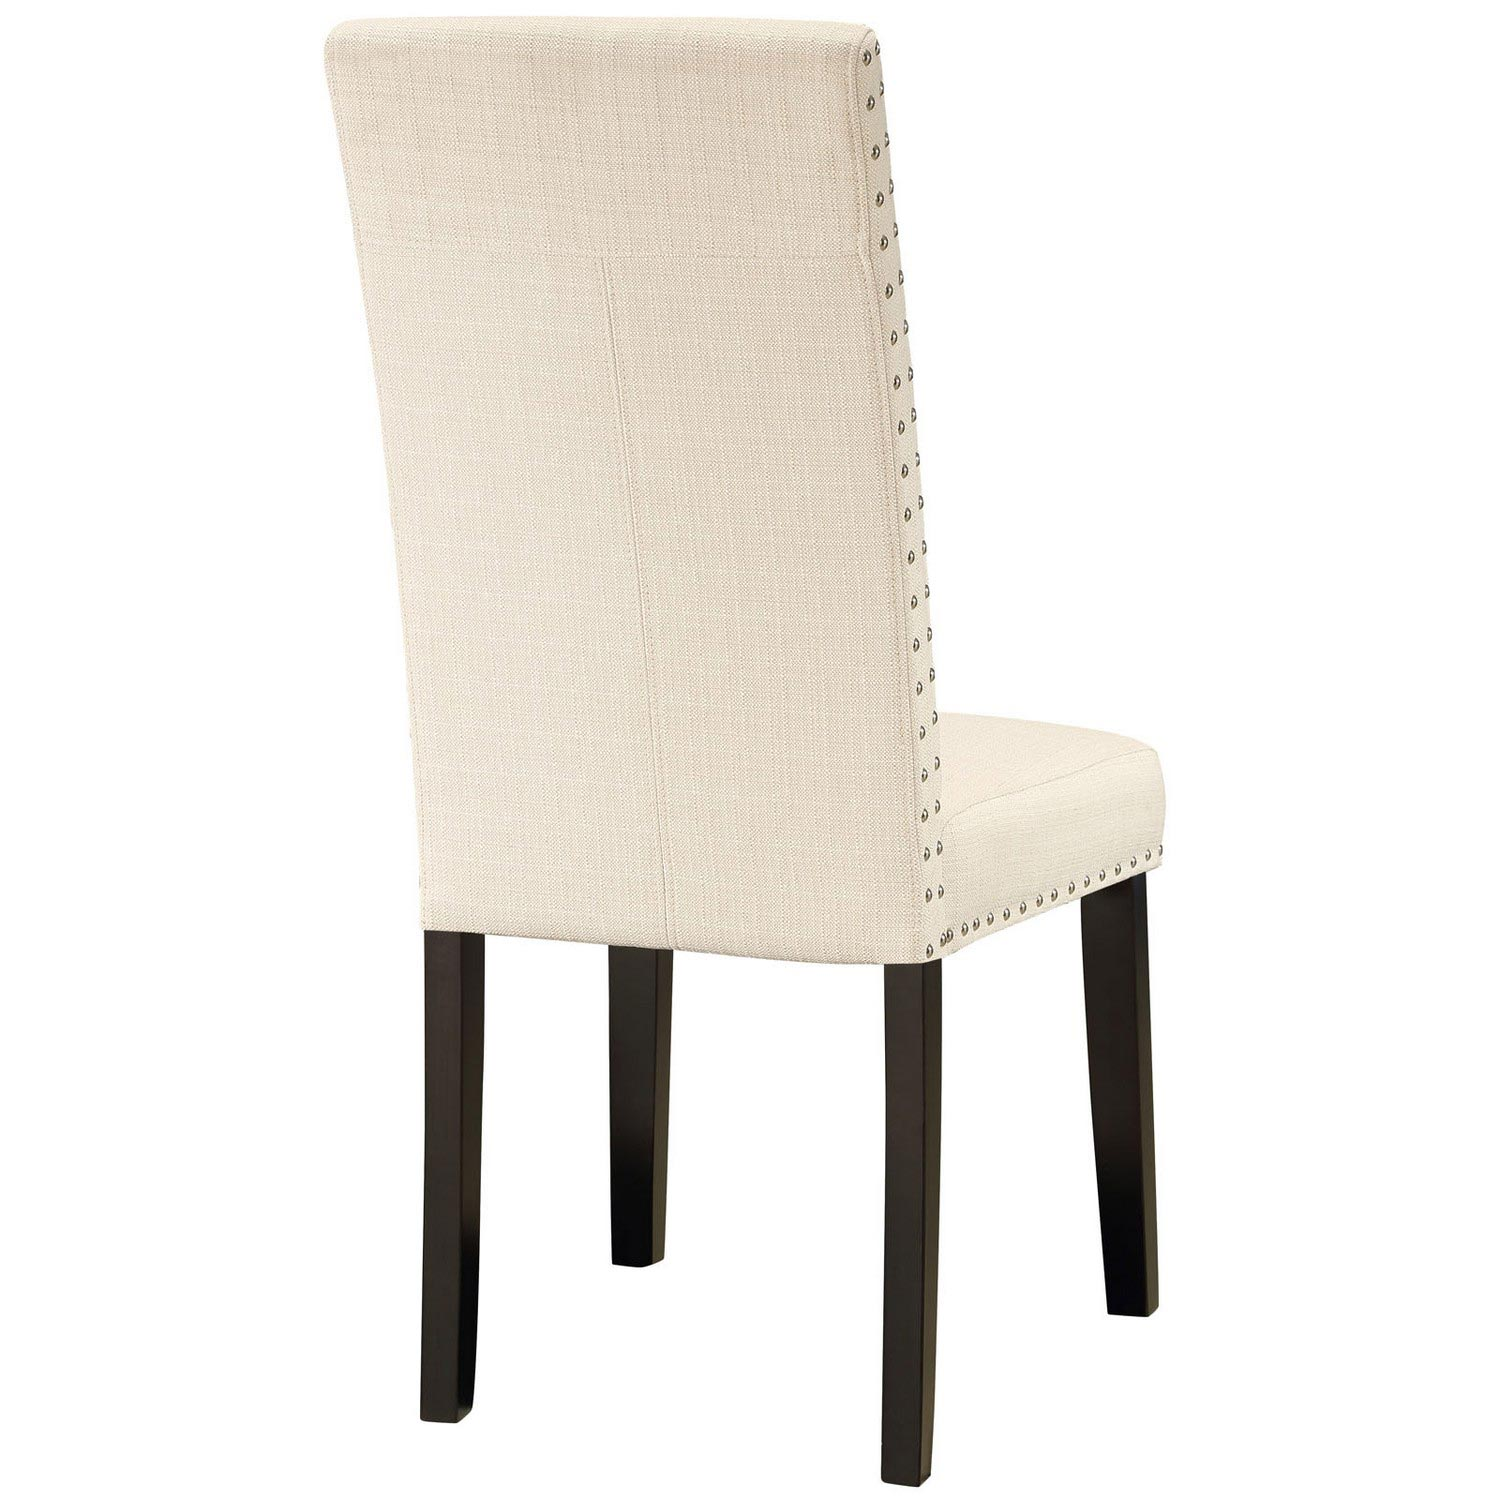 Modway Parcel Dining Fabric Side Chair - Beige